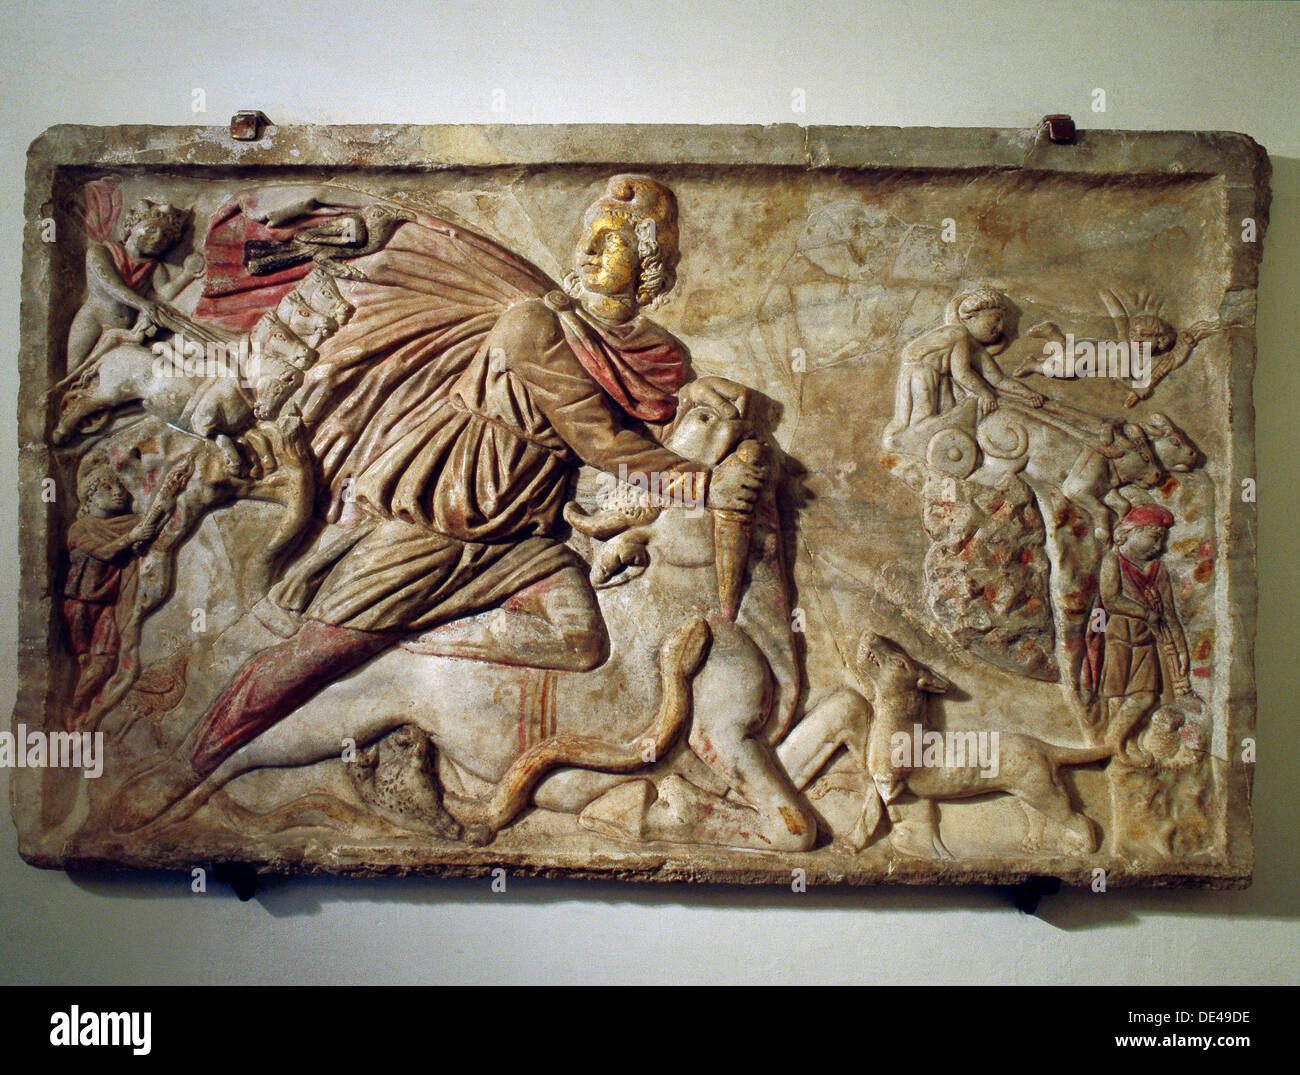 A relief of Mithras slaying the bull, the first of living creatures from whose blood, corn and all other forms of life arose. - Stock Image